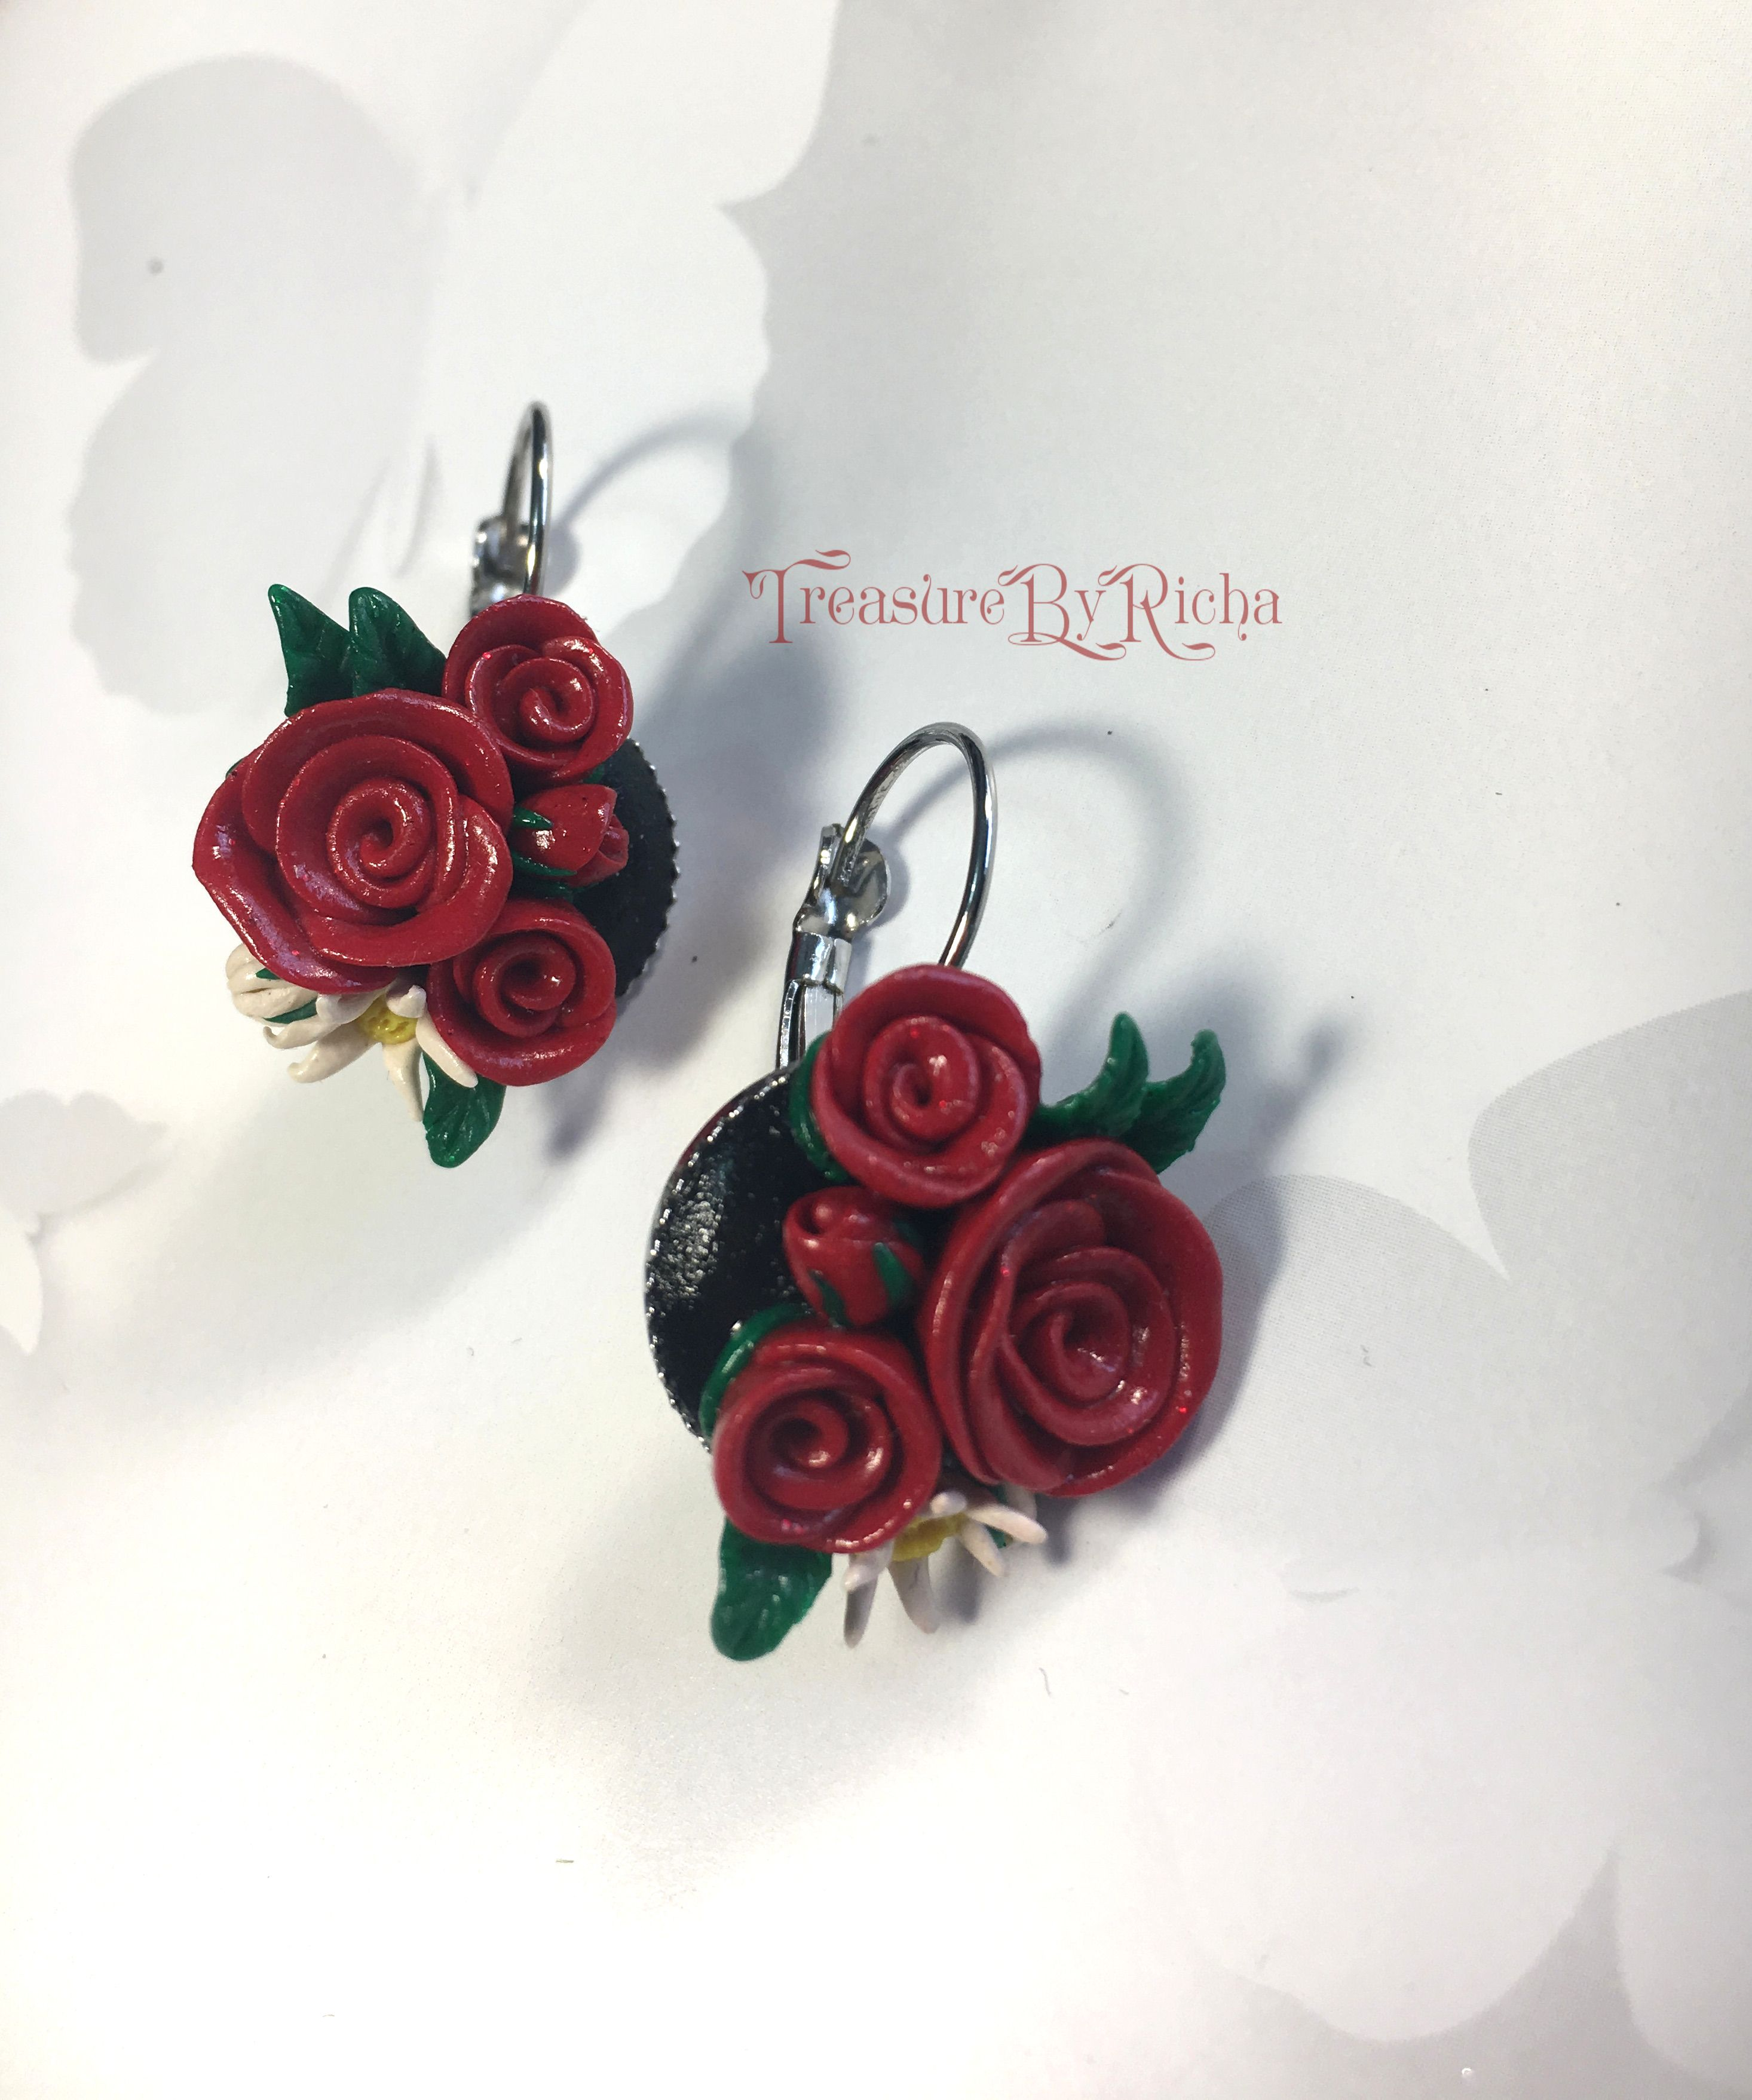 Flower Polymer Clay Earrings Clay Rose Earrings Clay Earrings Beautiful Earrings Rose Flower Earrings Vale Red Flower Earrings Clay Earrings Rose Earrings